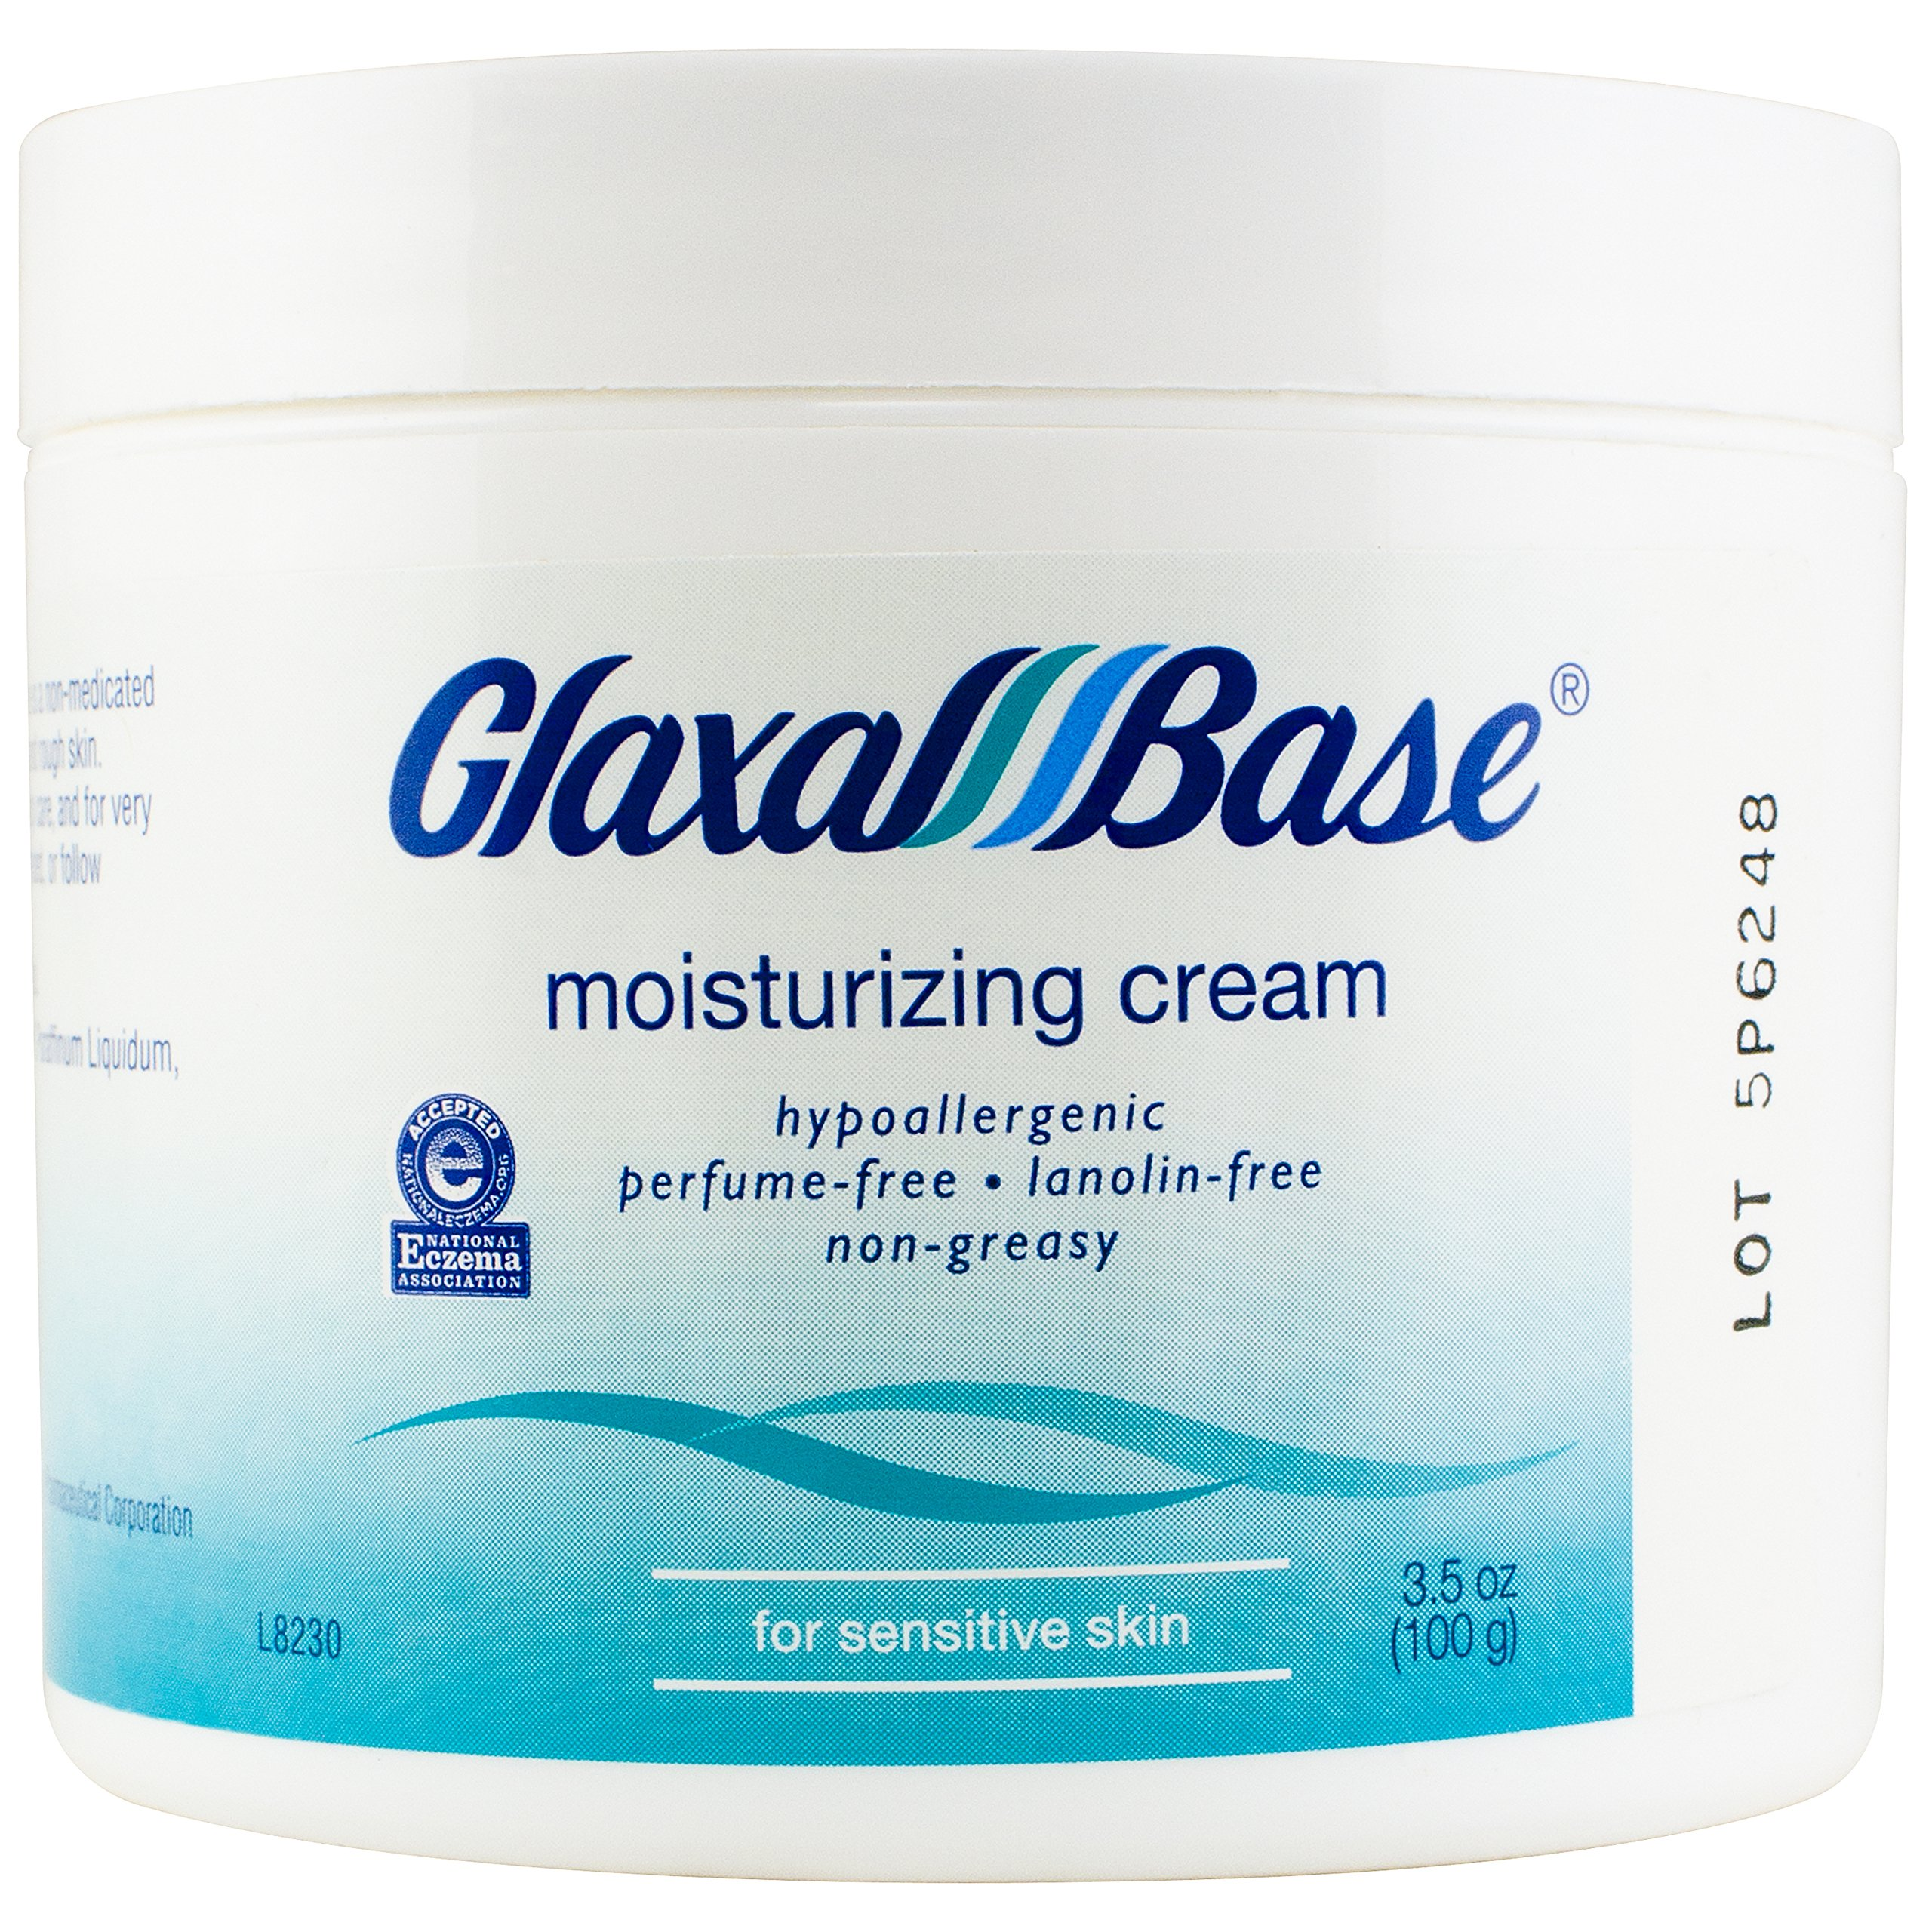 Glaxal Base Moisturizing Cream, 100 g (1 Count), Fragrance Free, Hypoallergenic, Soothing for Sensitive Skin, Nonirritating to Eczema